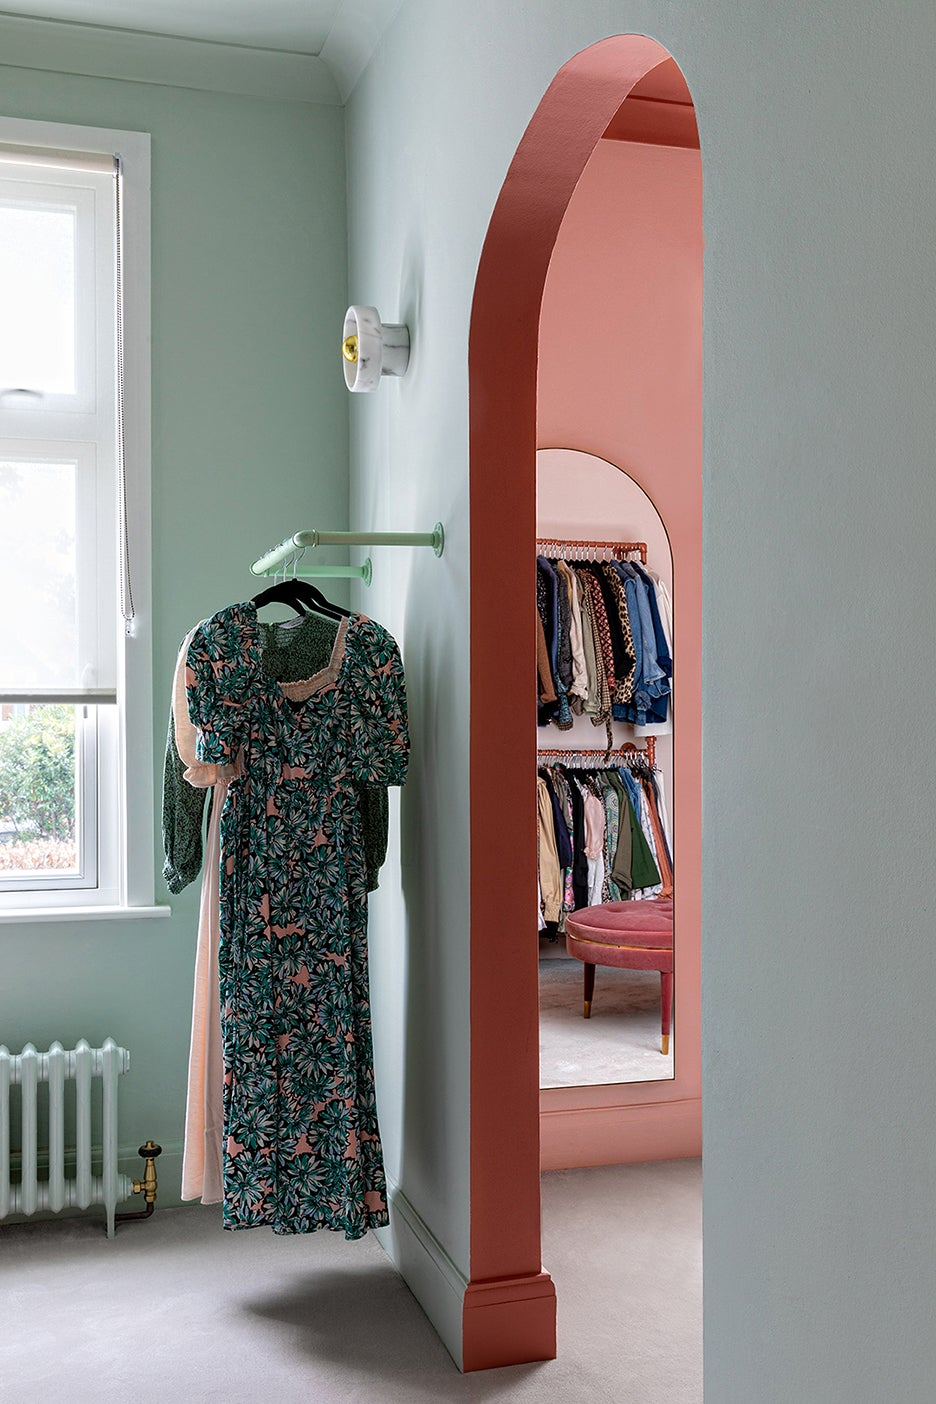 green closet with pink archway